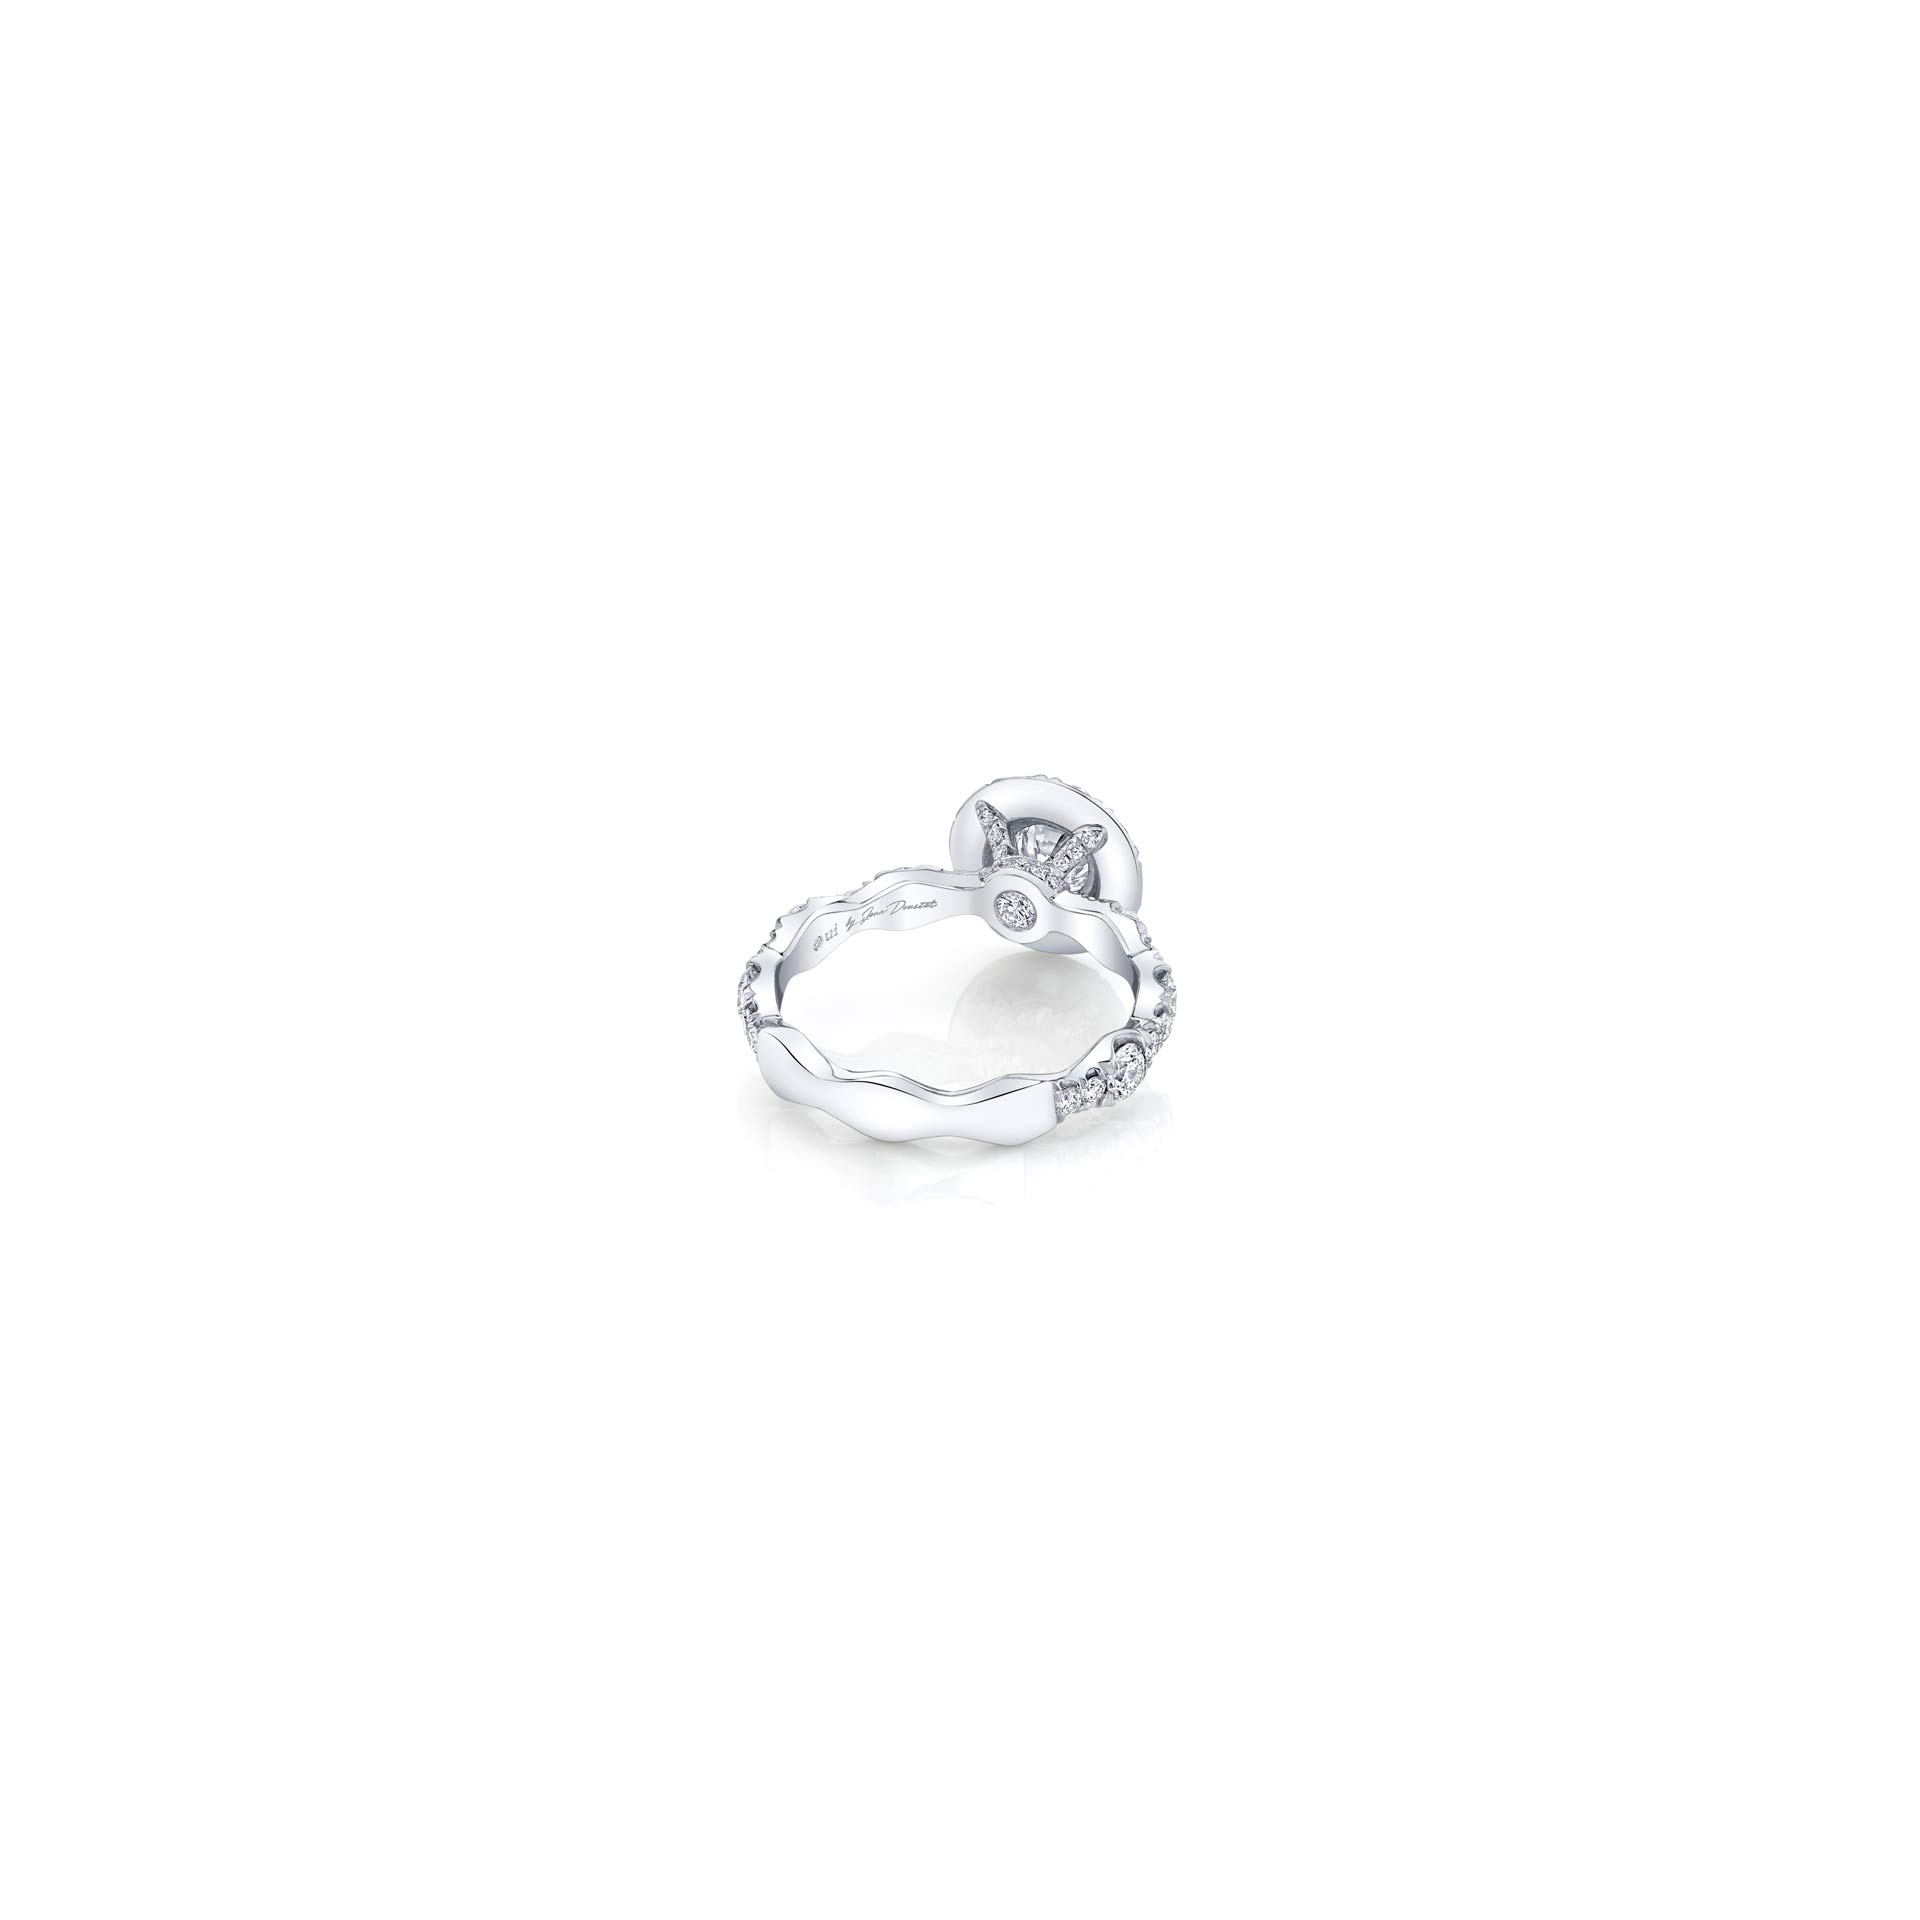 Yvonne Floating Round Brilliant Seamless Solitaire® Three Stone Engagement Ring with a diamond pavé wave in 18k White Gold Back View by Oui by Jean Dousset